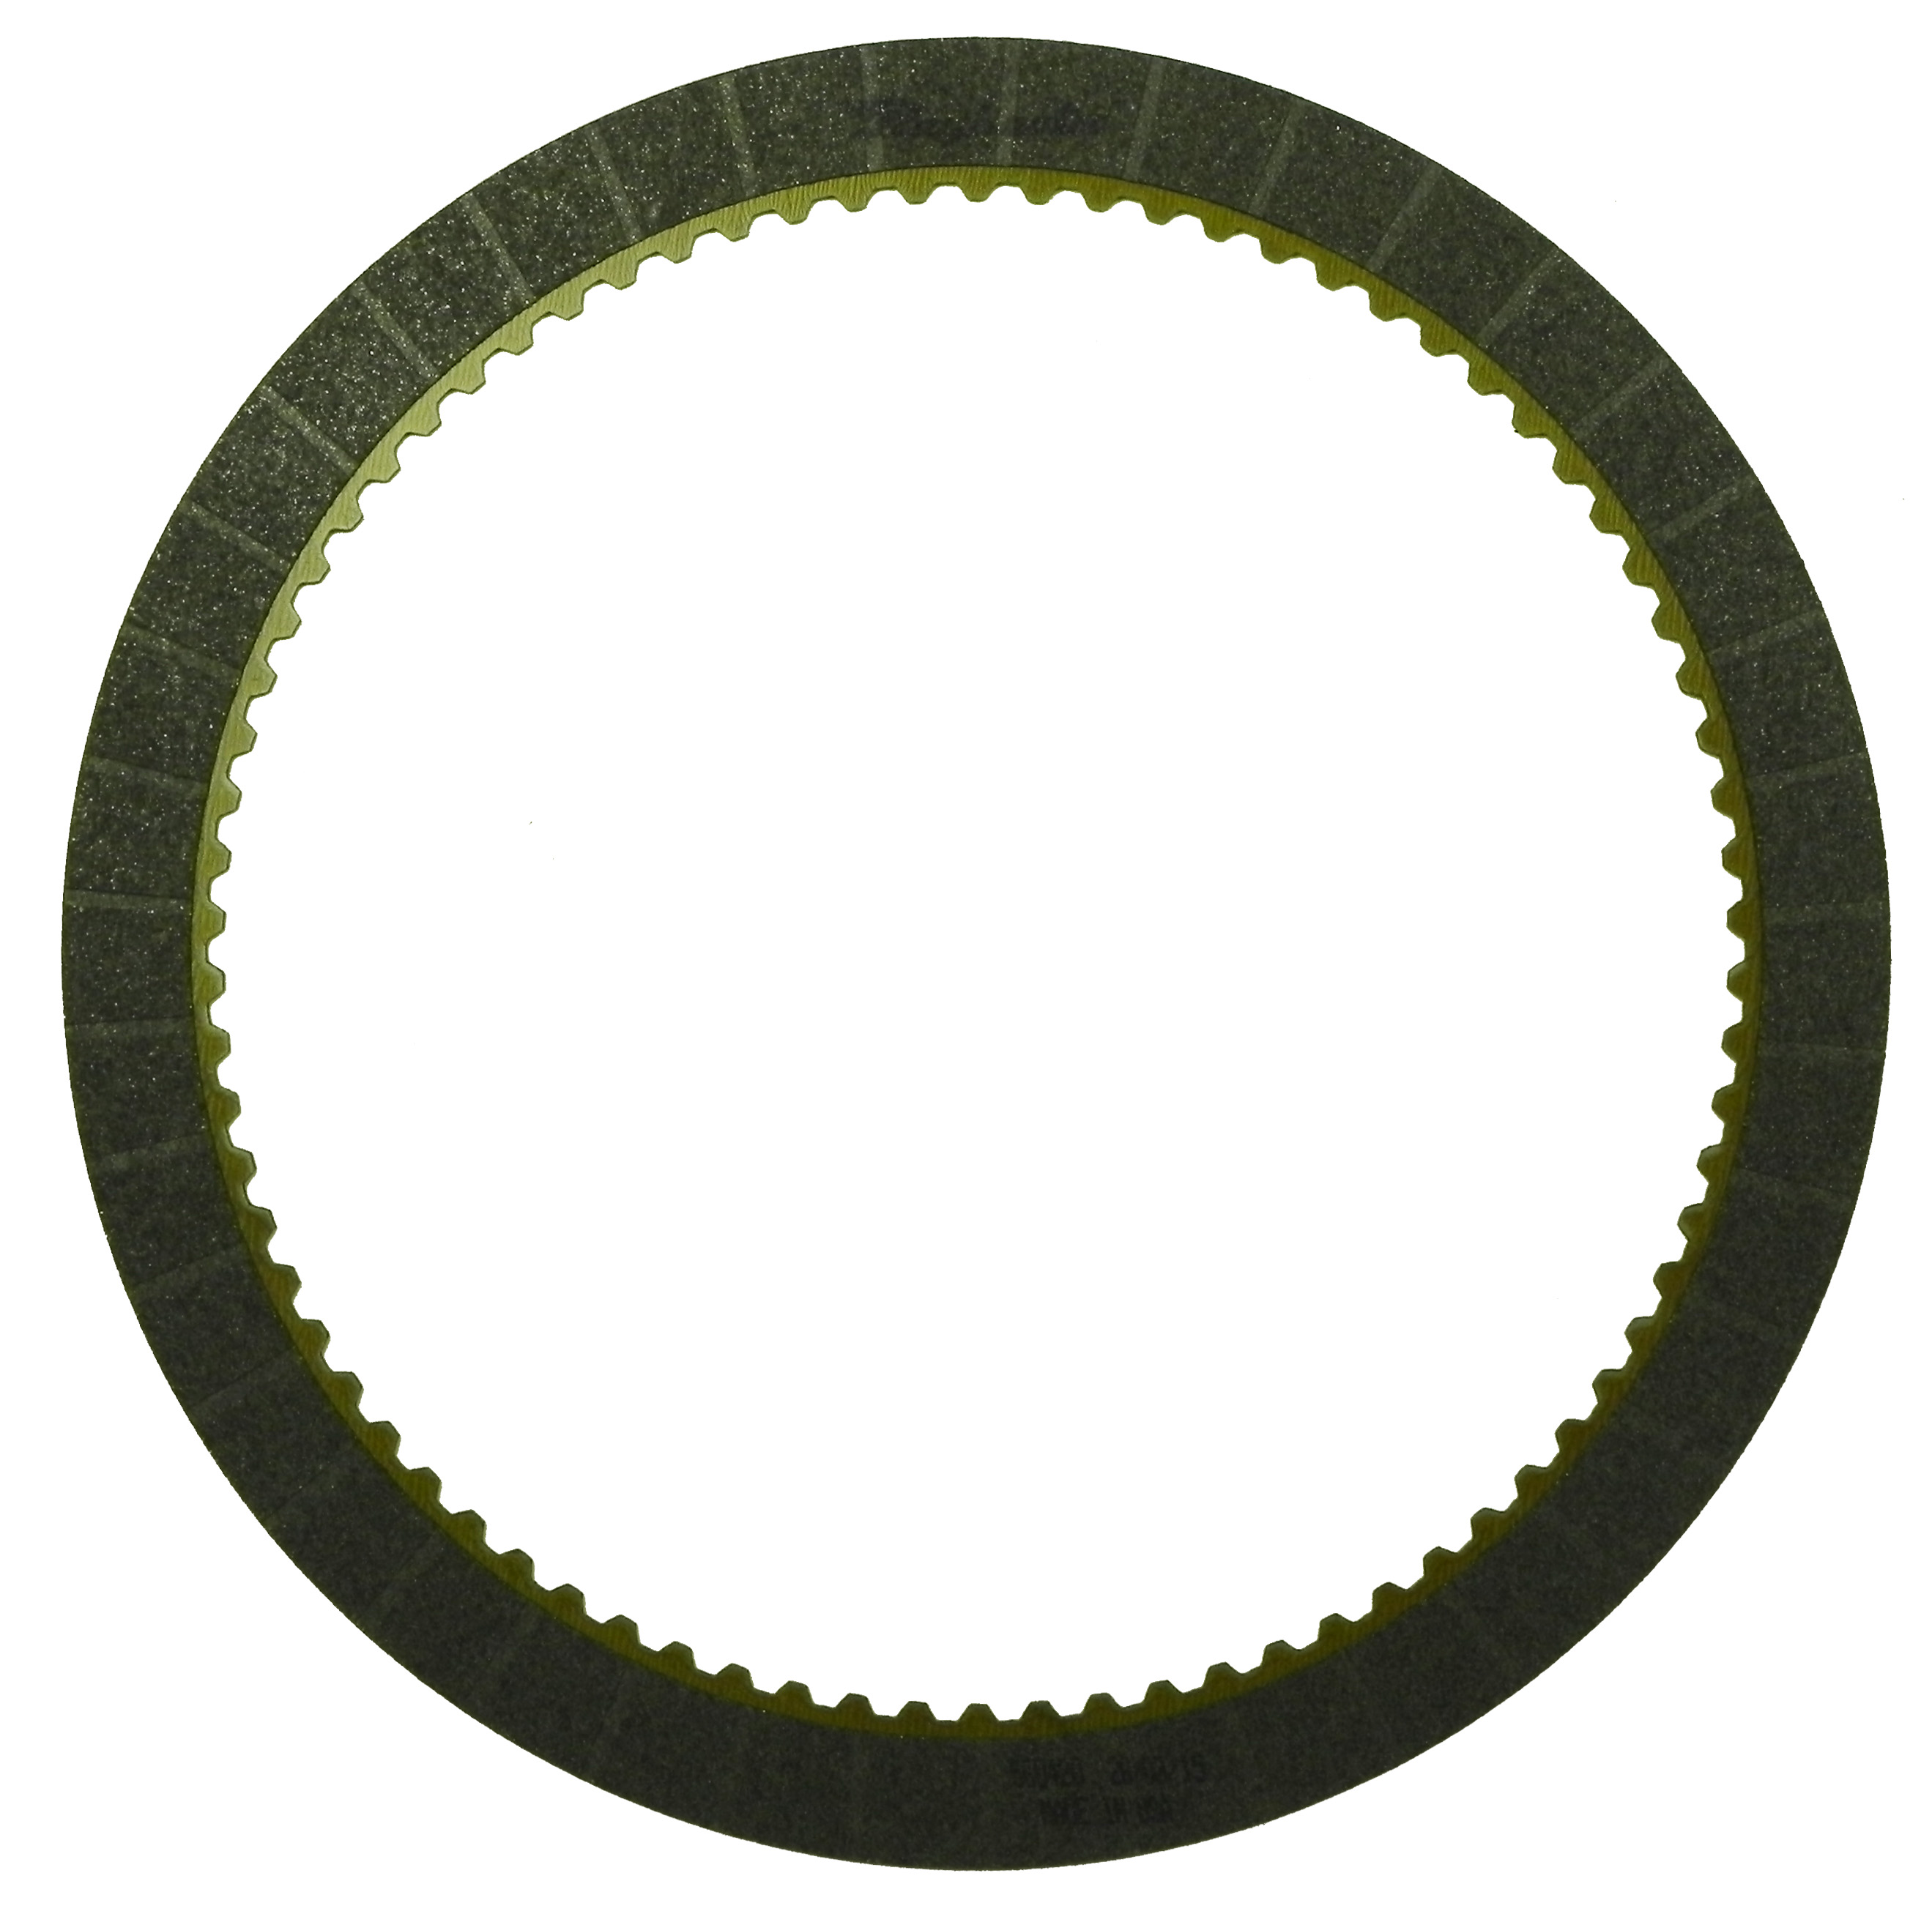 R560420 | 2007-ON Friction Clutch Plate High Energy K3 3rd, 5th, Reverse Clutch High Energy